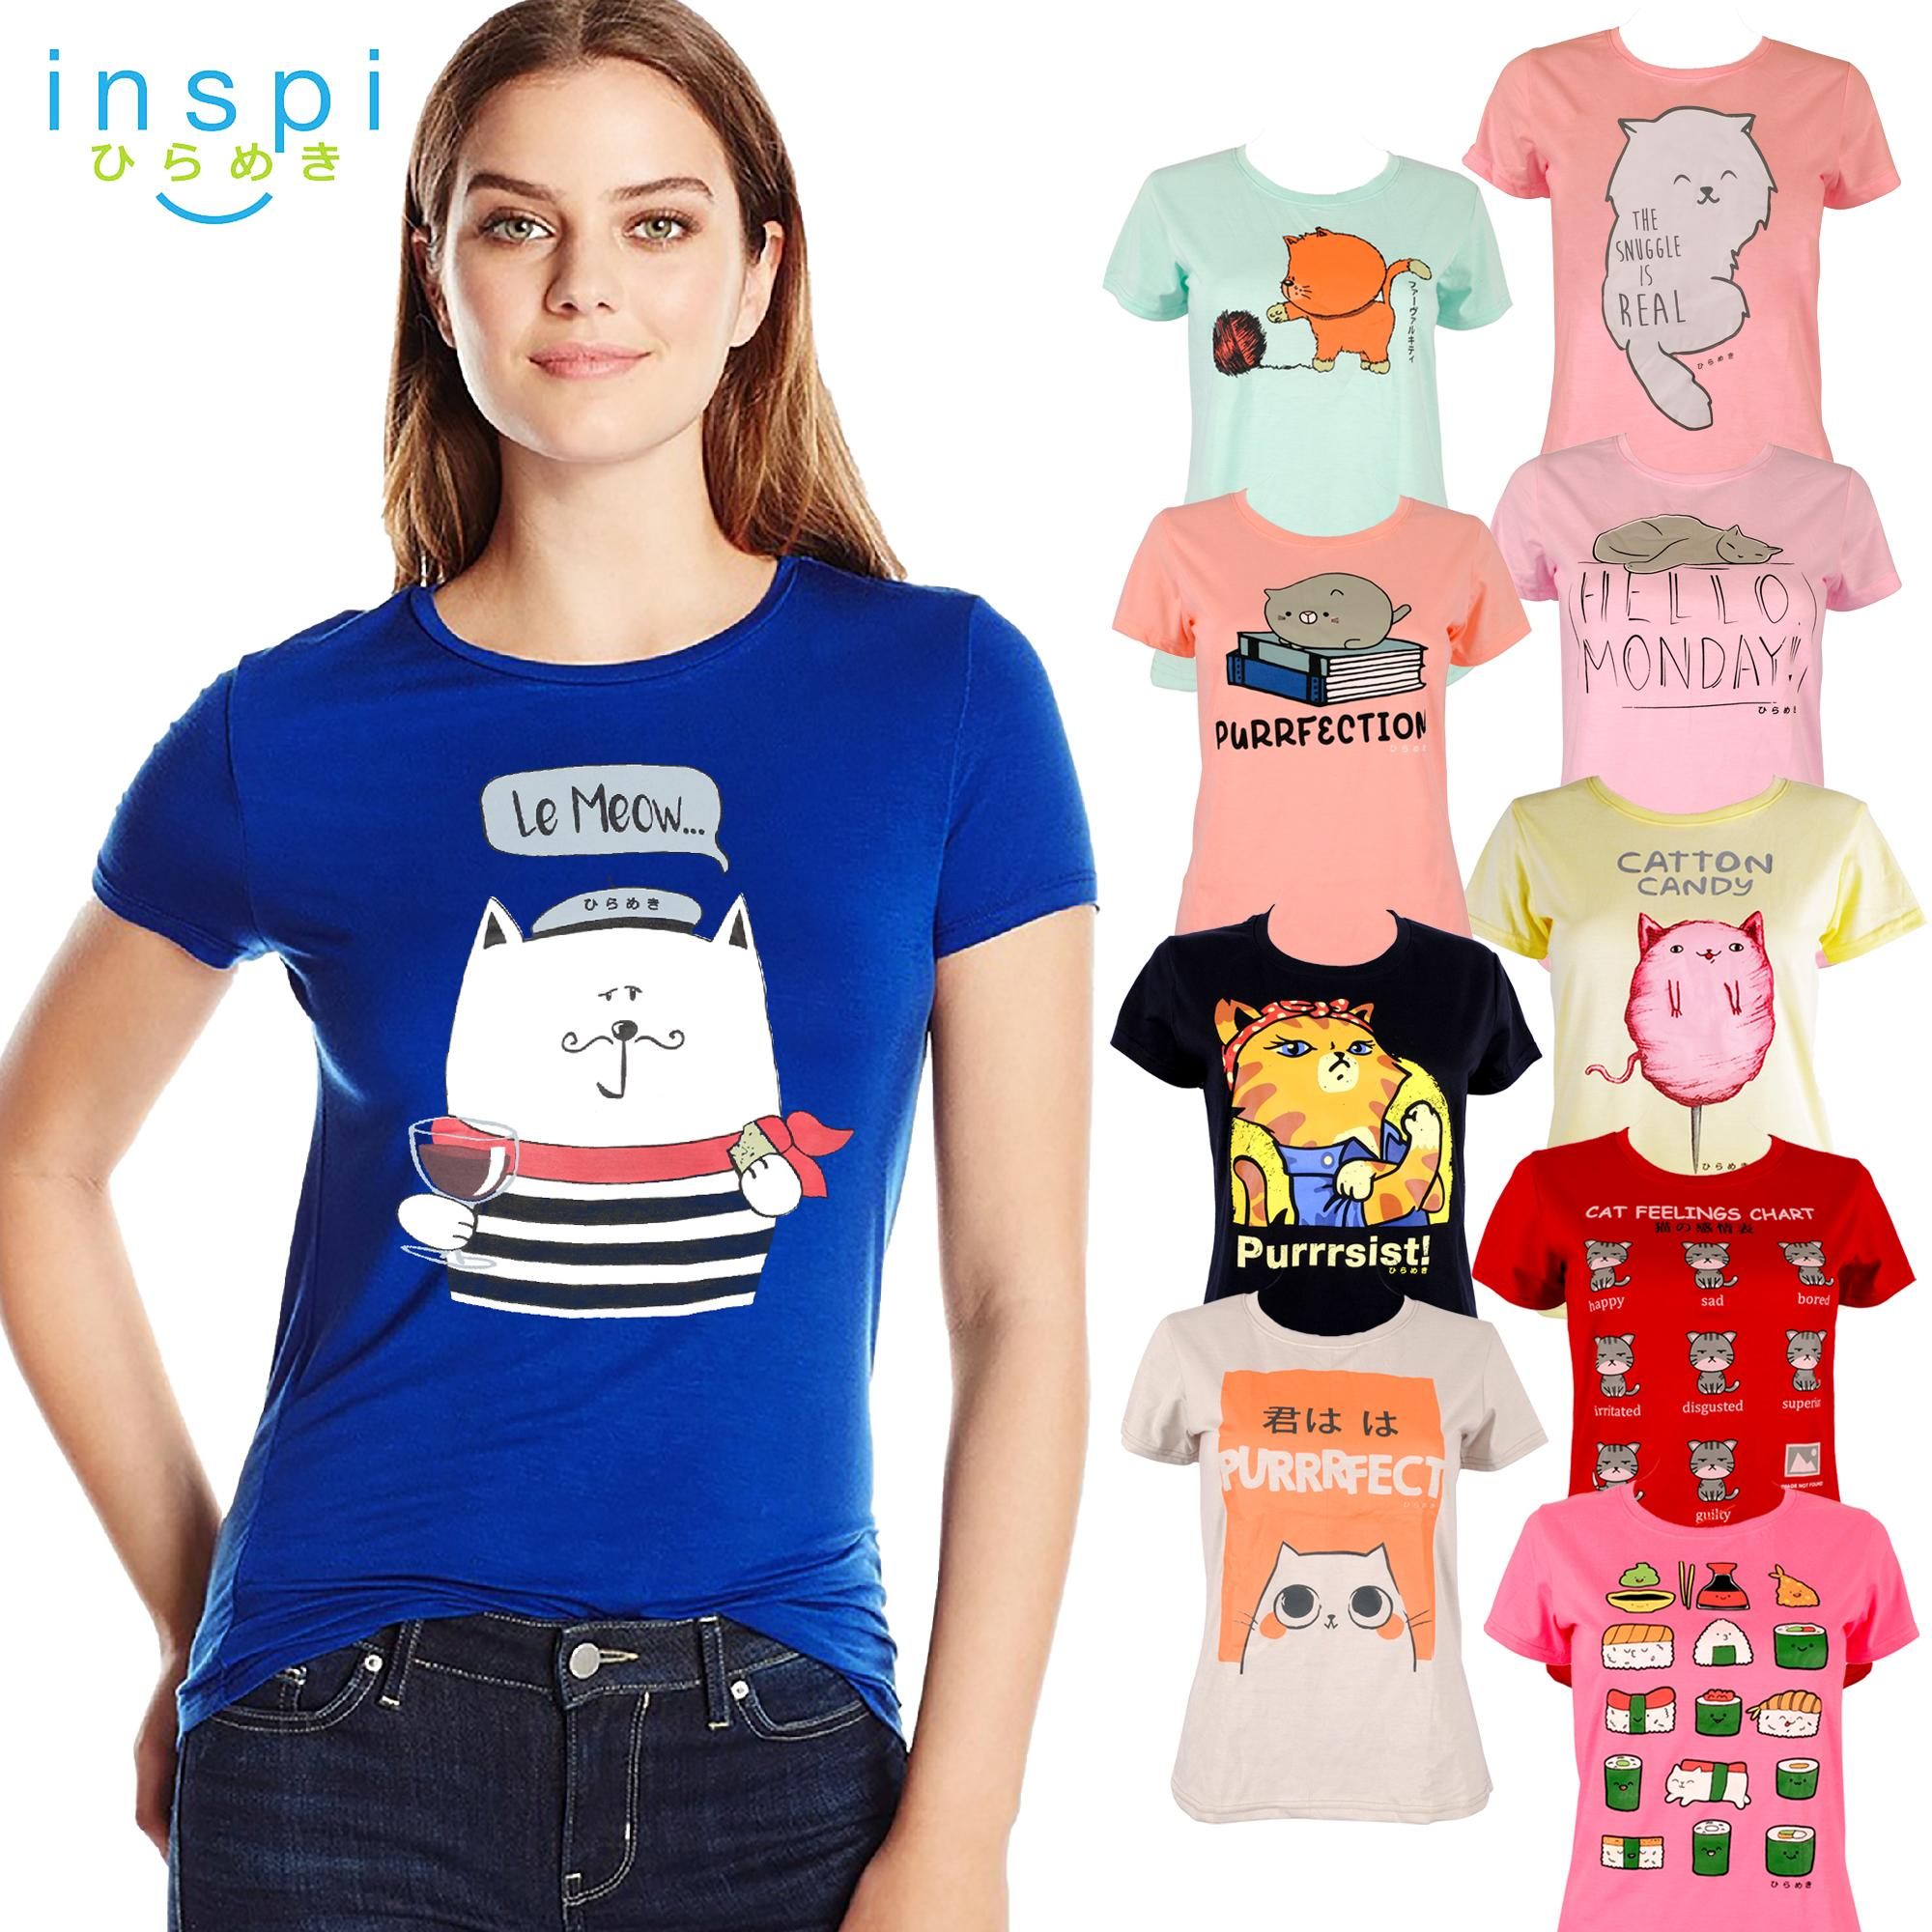 21032fb4a509a INSPI Tees Ladies Neko Collection tshirt printed graphic tee Ladies t shirt  shirts women tshirts for